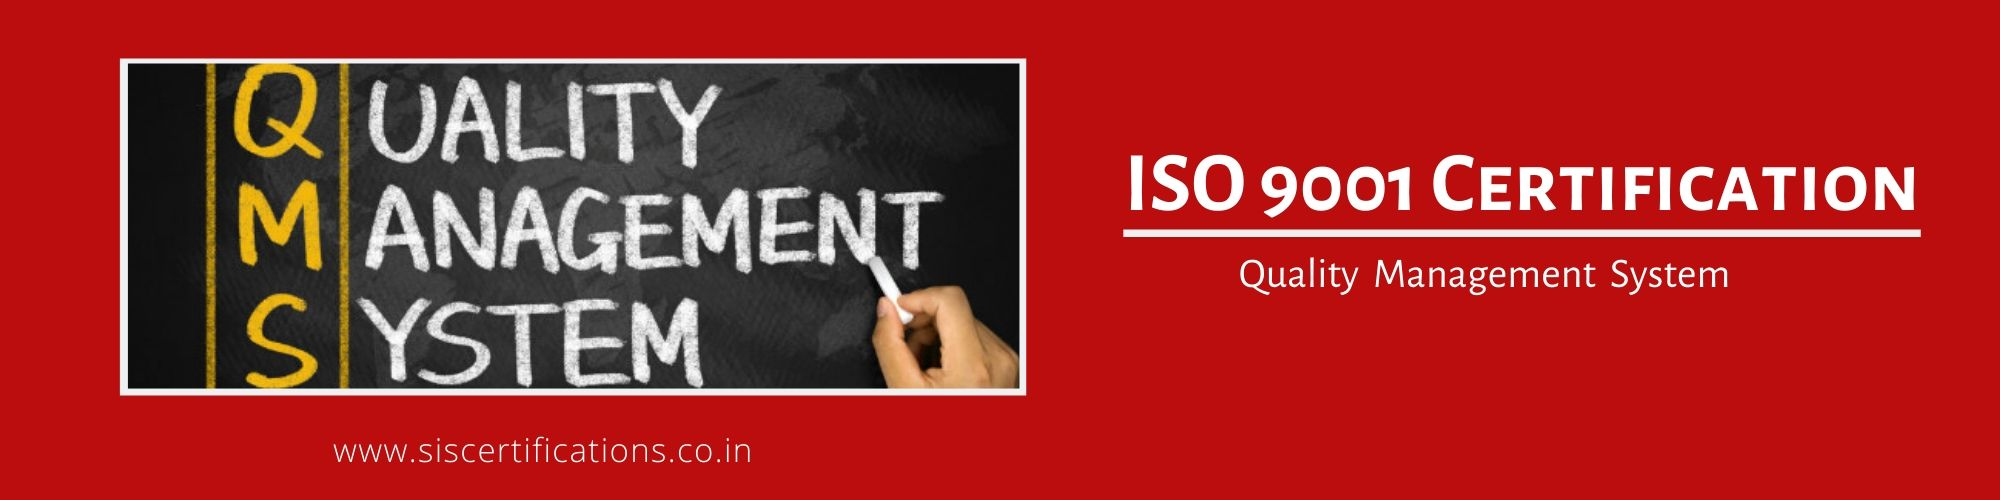 ✅ ISO 9001 Certification ✅